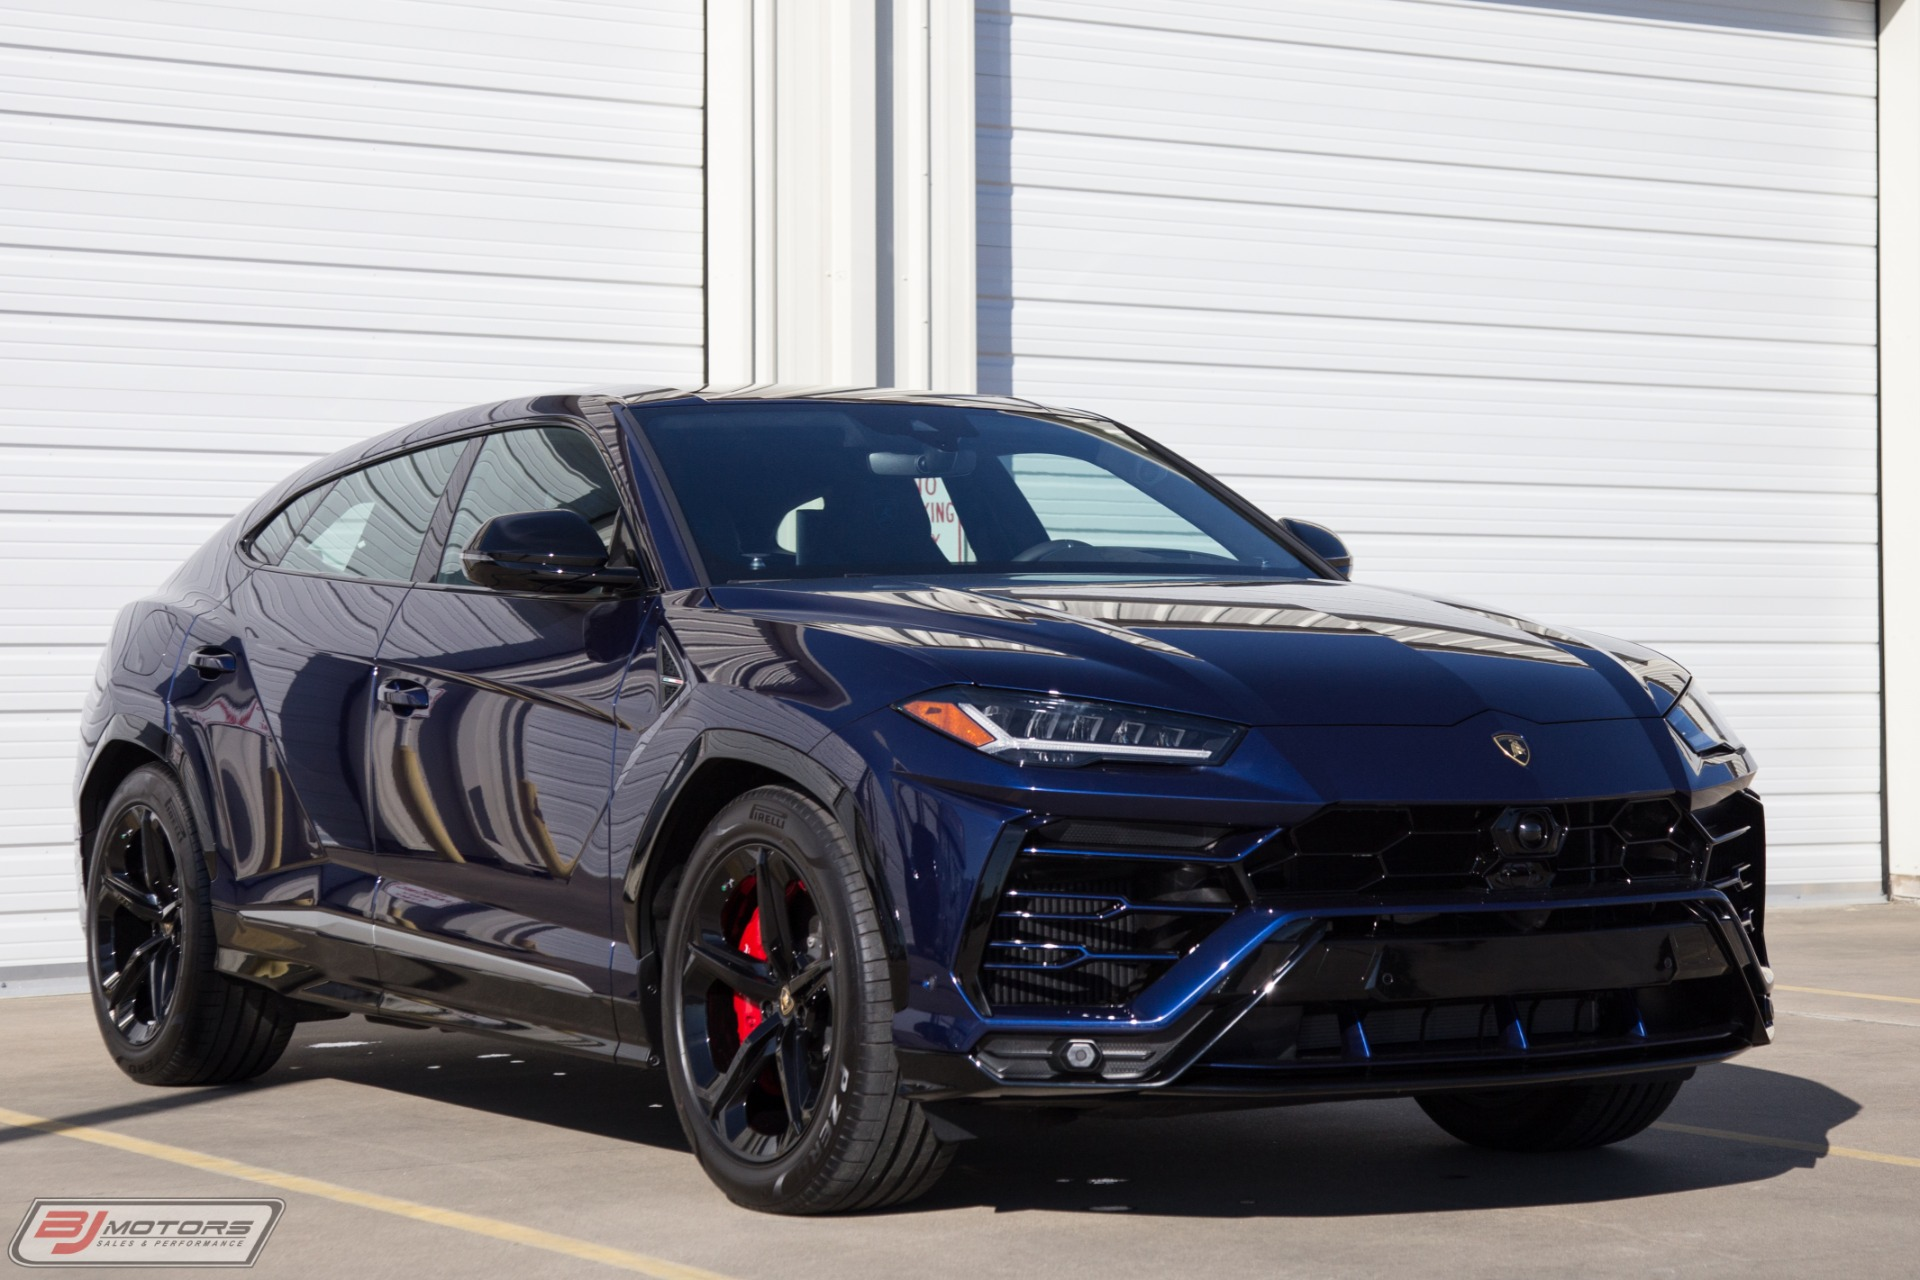 Used 2019 Lamborghini Urus For Sale ($249,995)